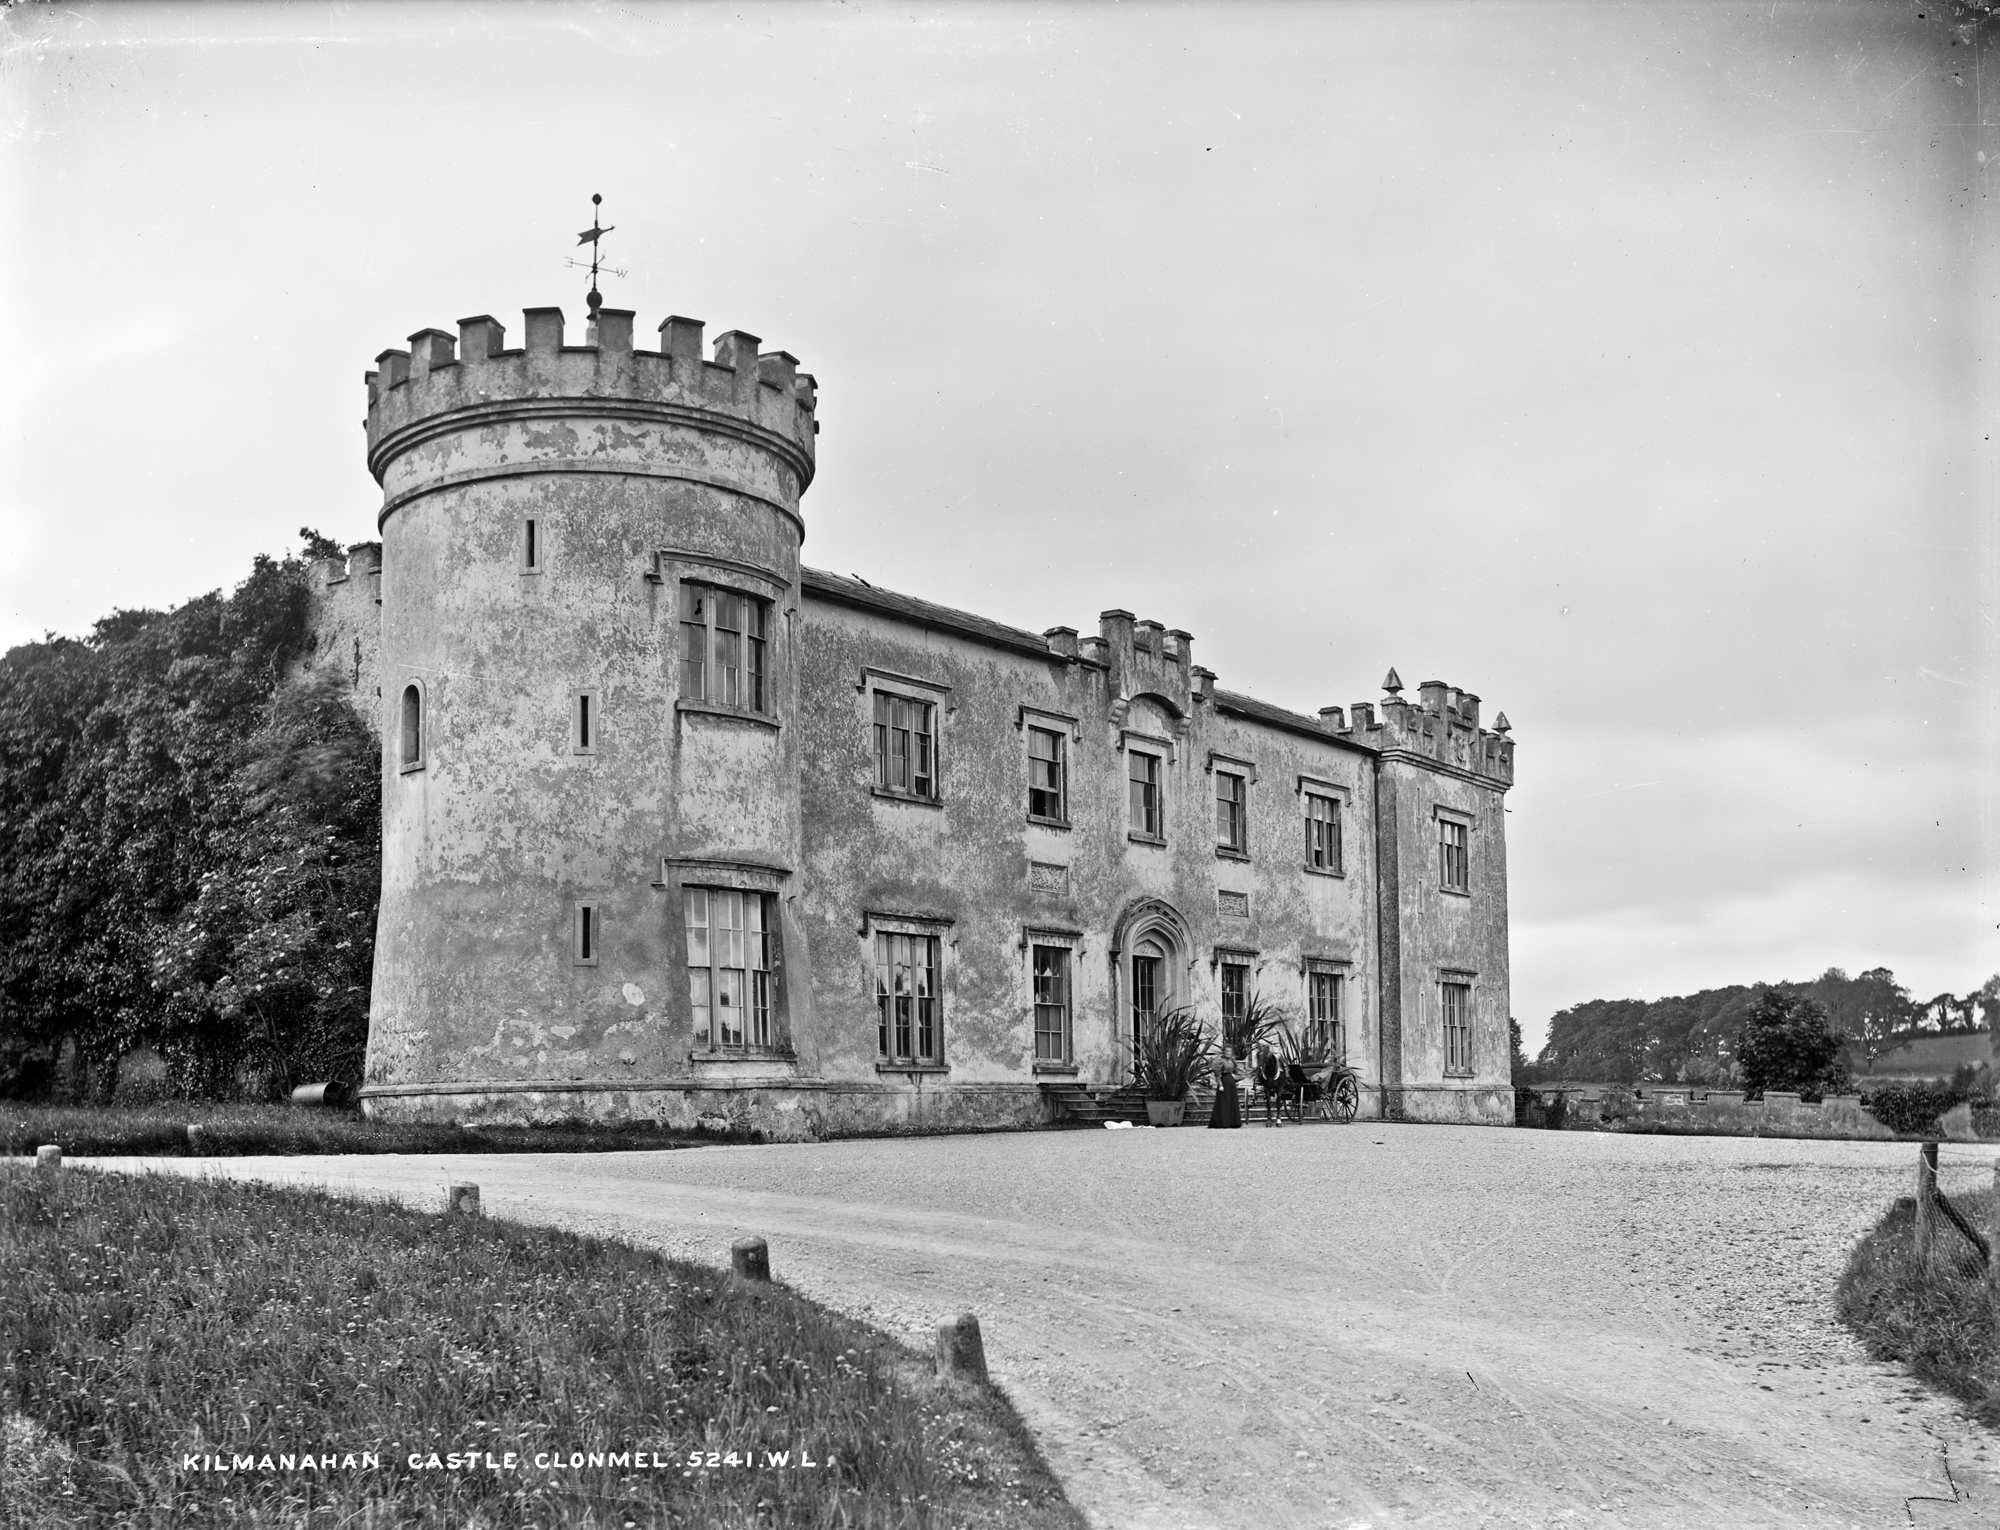 Kilmanahan Castle, Clonmel, Co. Tipperary